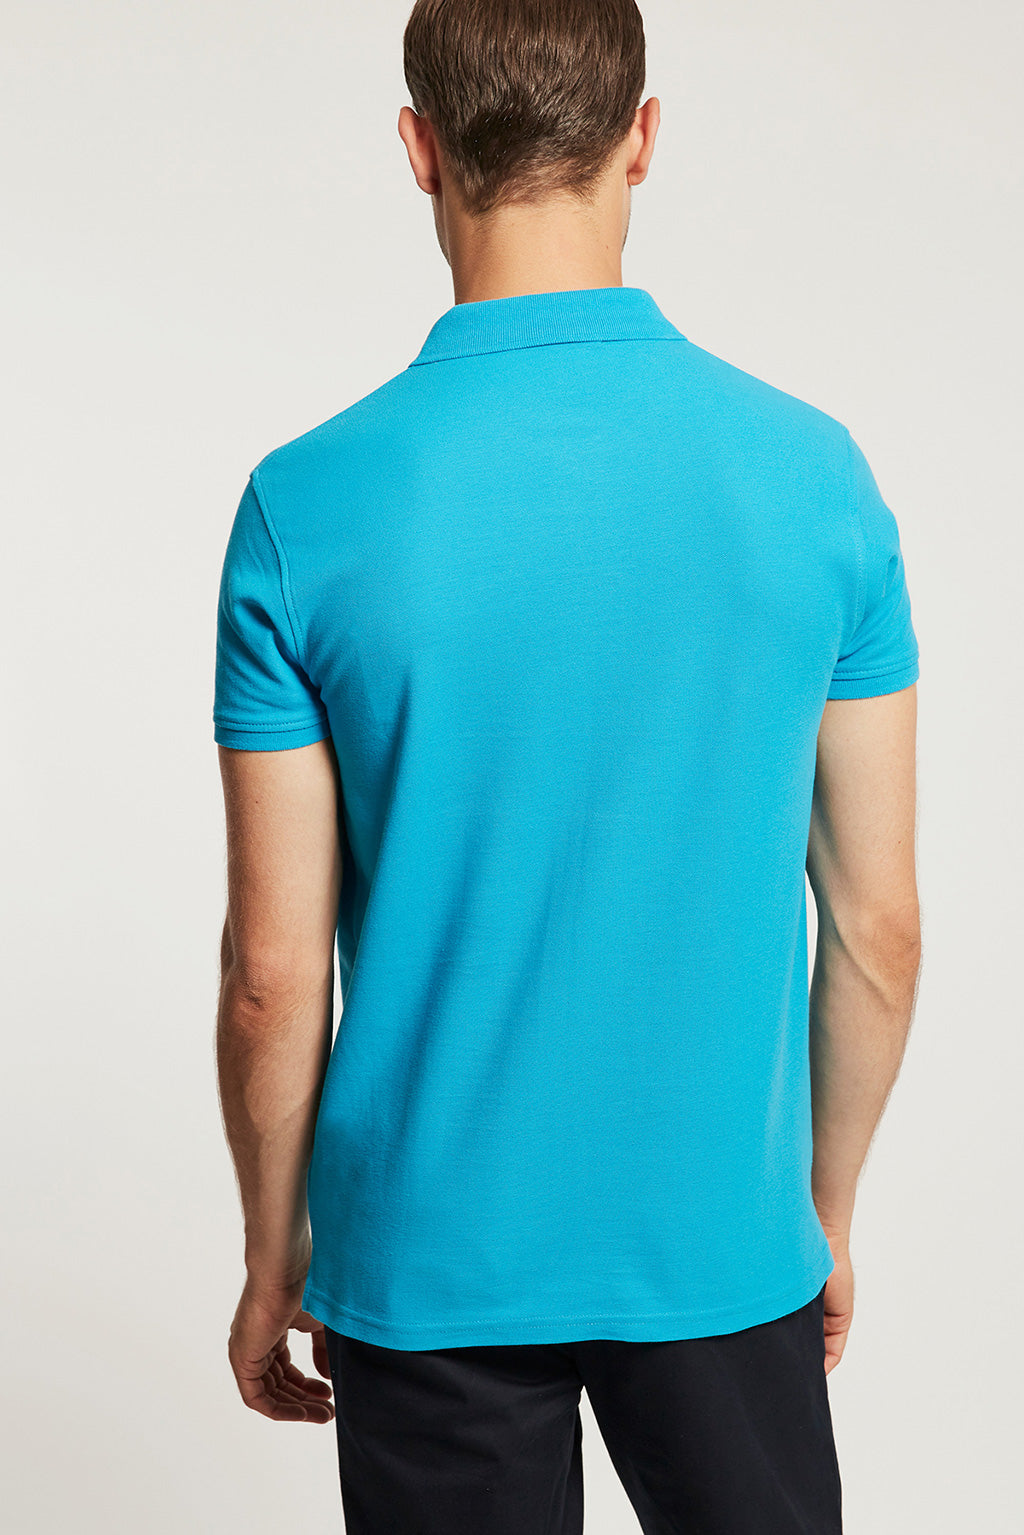 Turquoise pique polo shirt